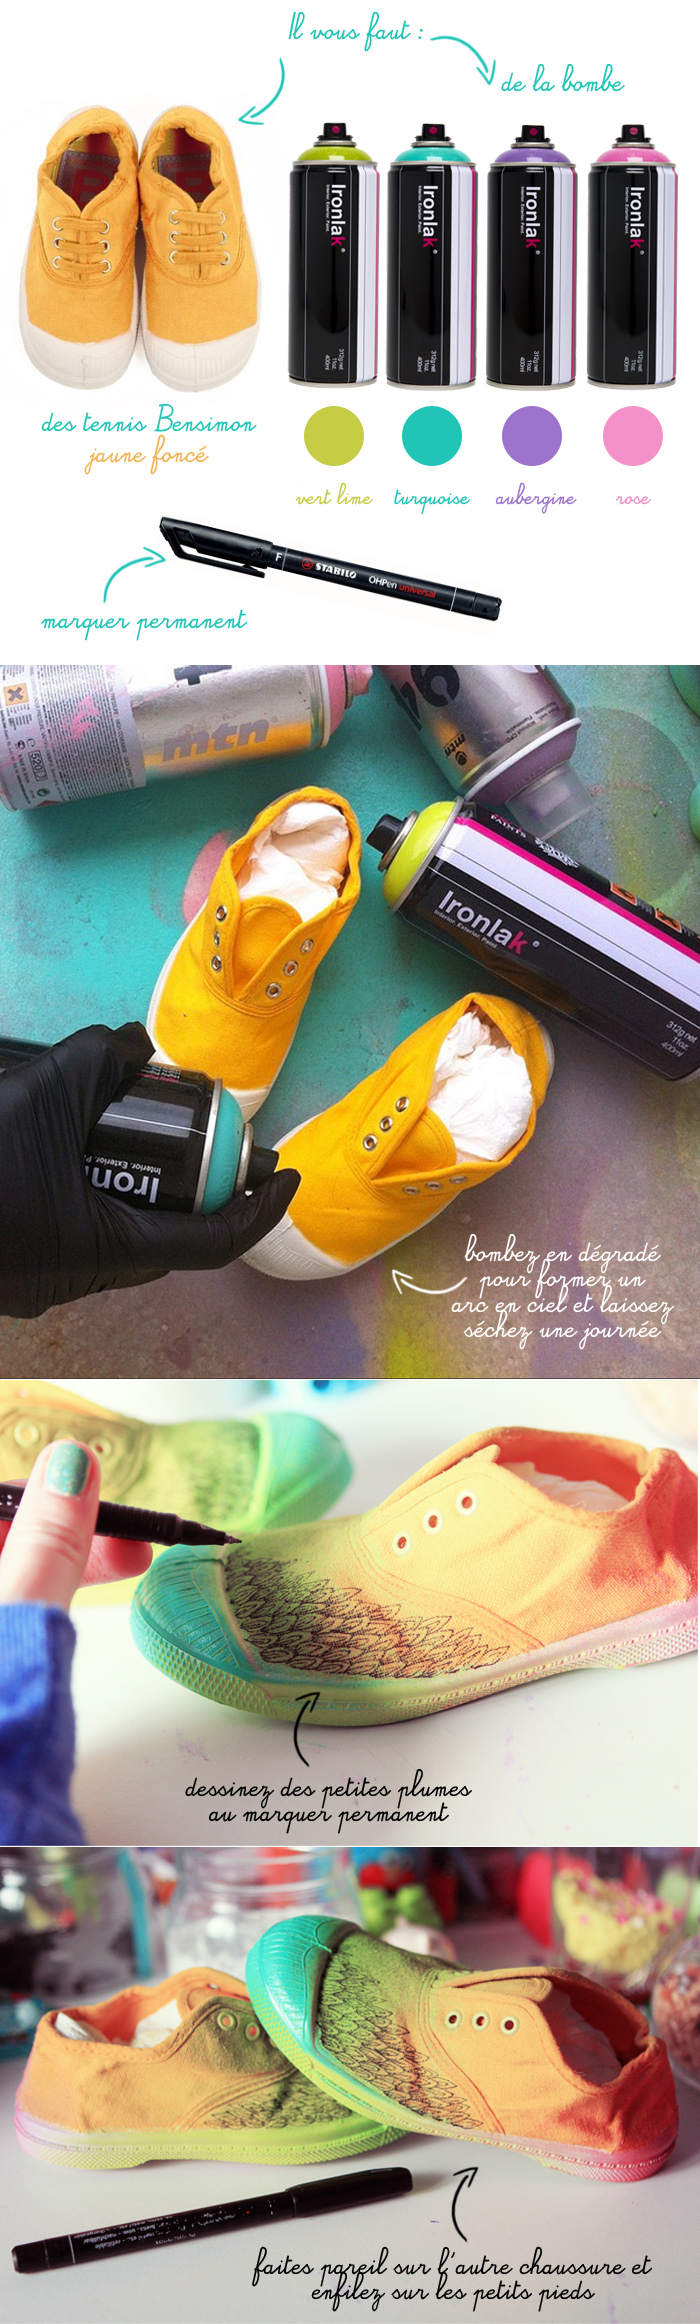 bensimon-diy-custom-tennis